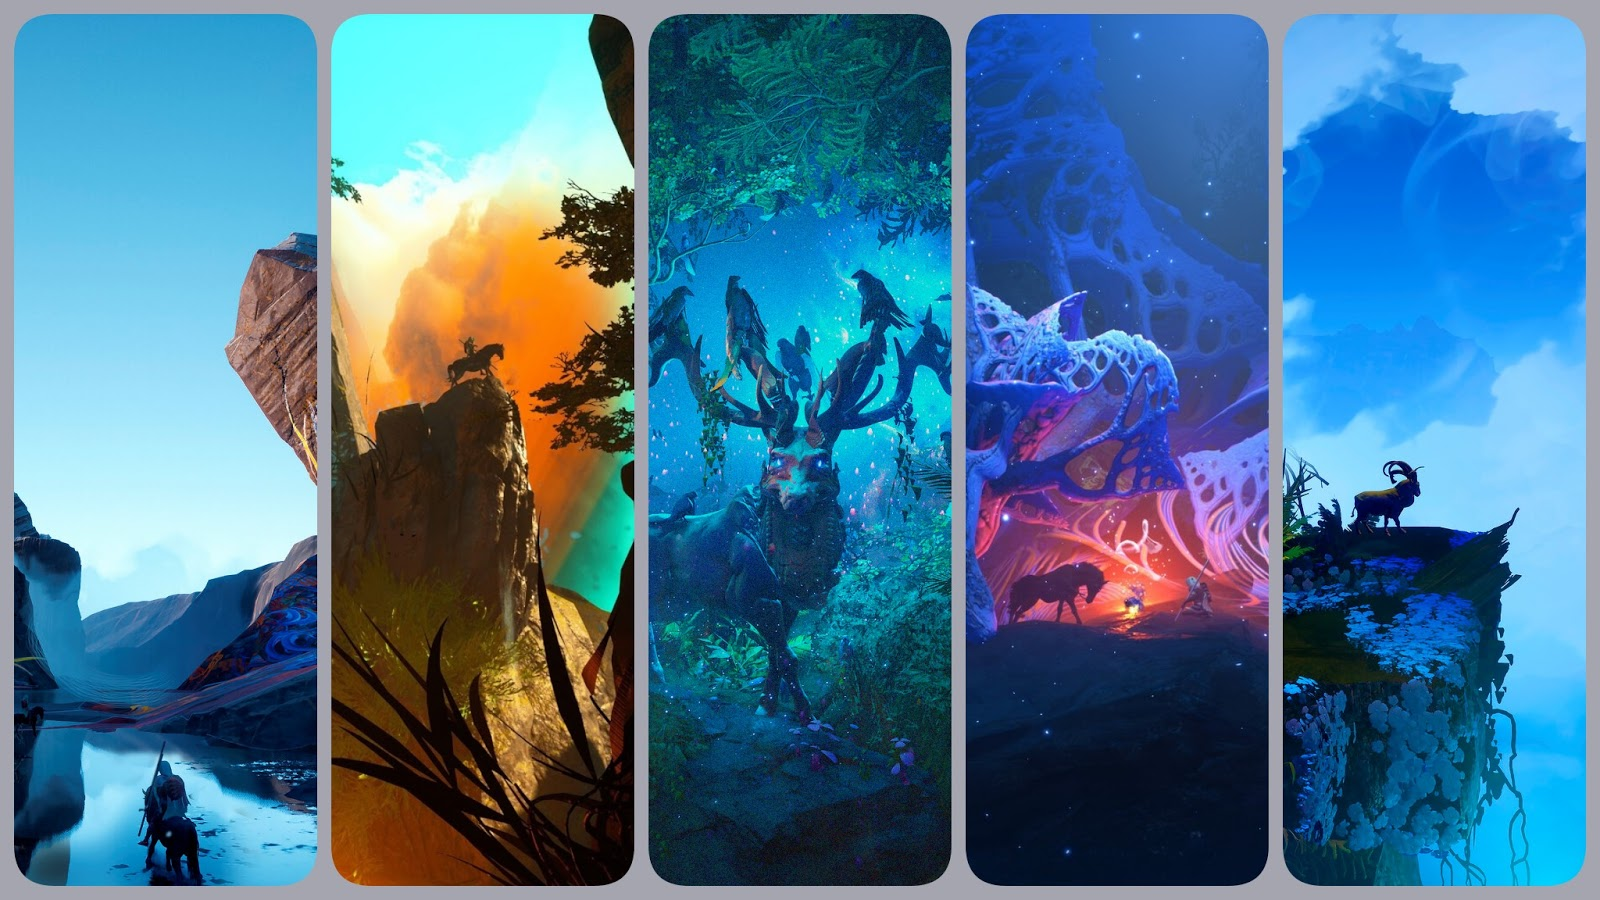 Phone wallpaper collection 211 - Fantasy Illustrations